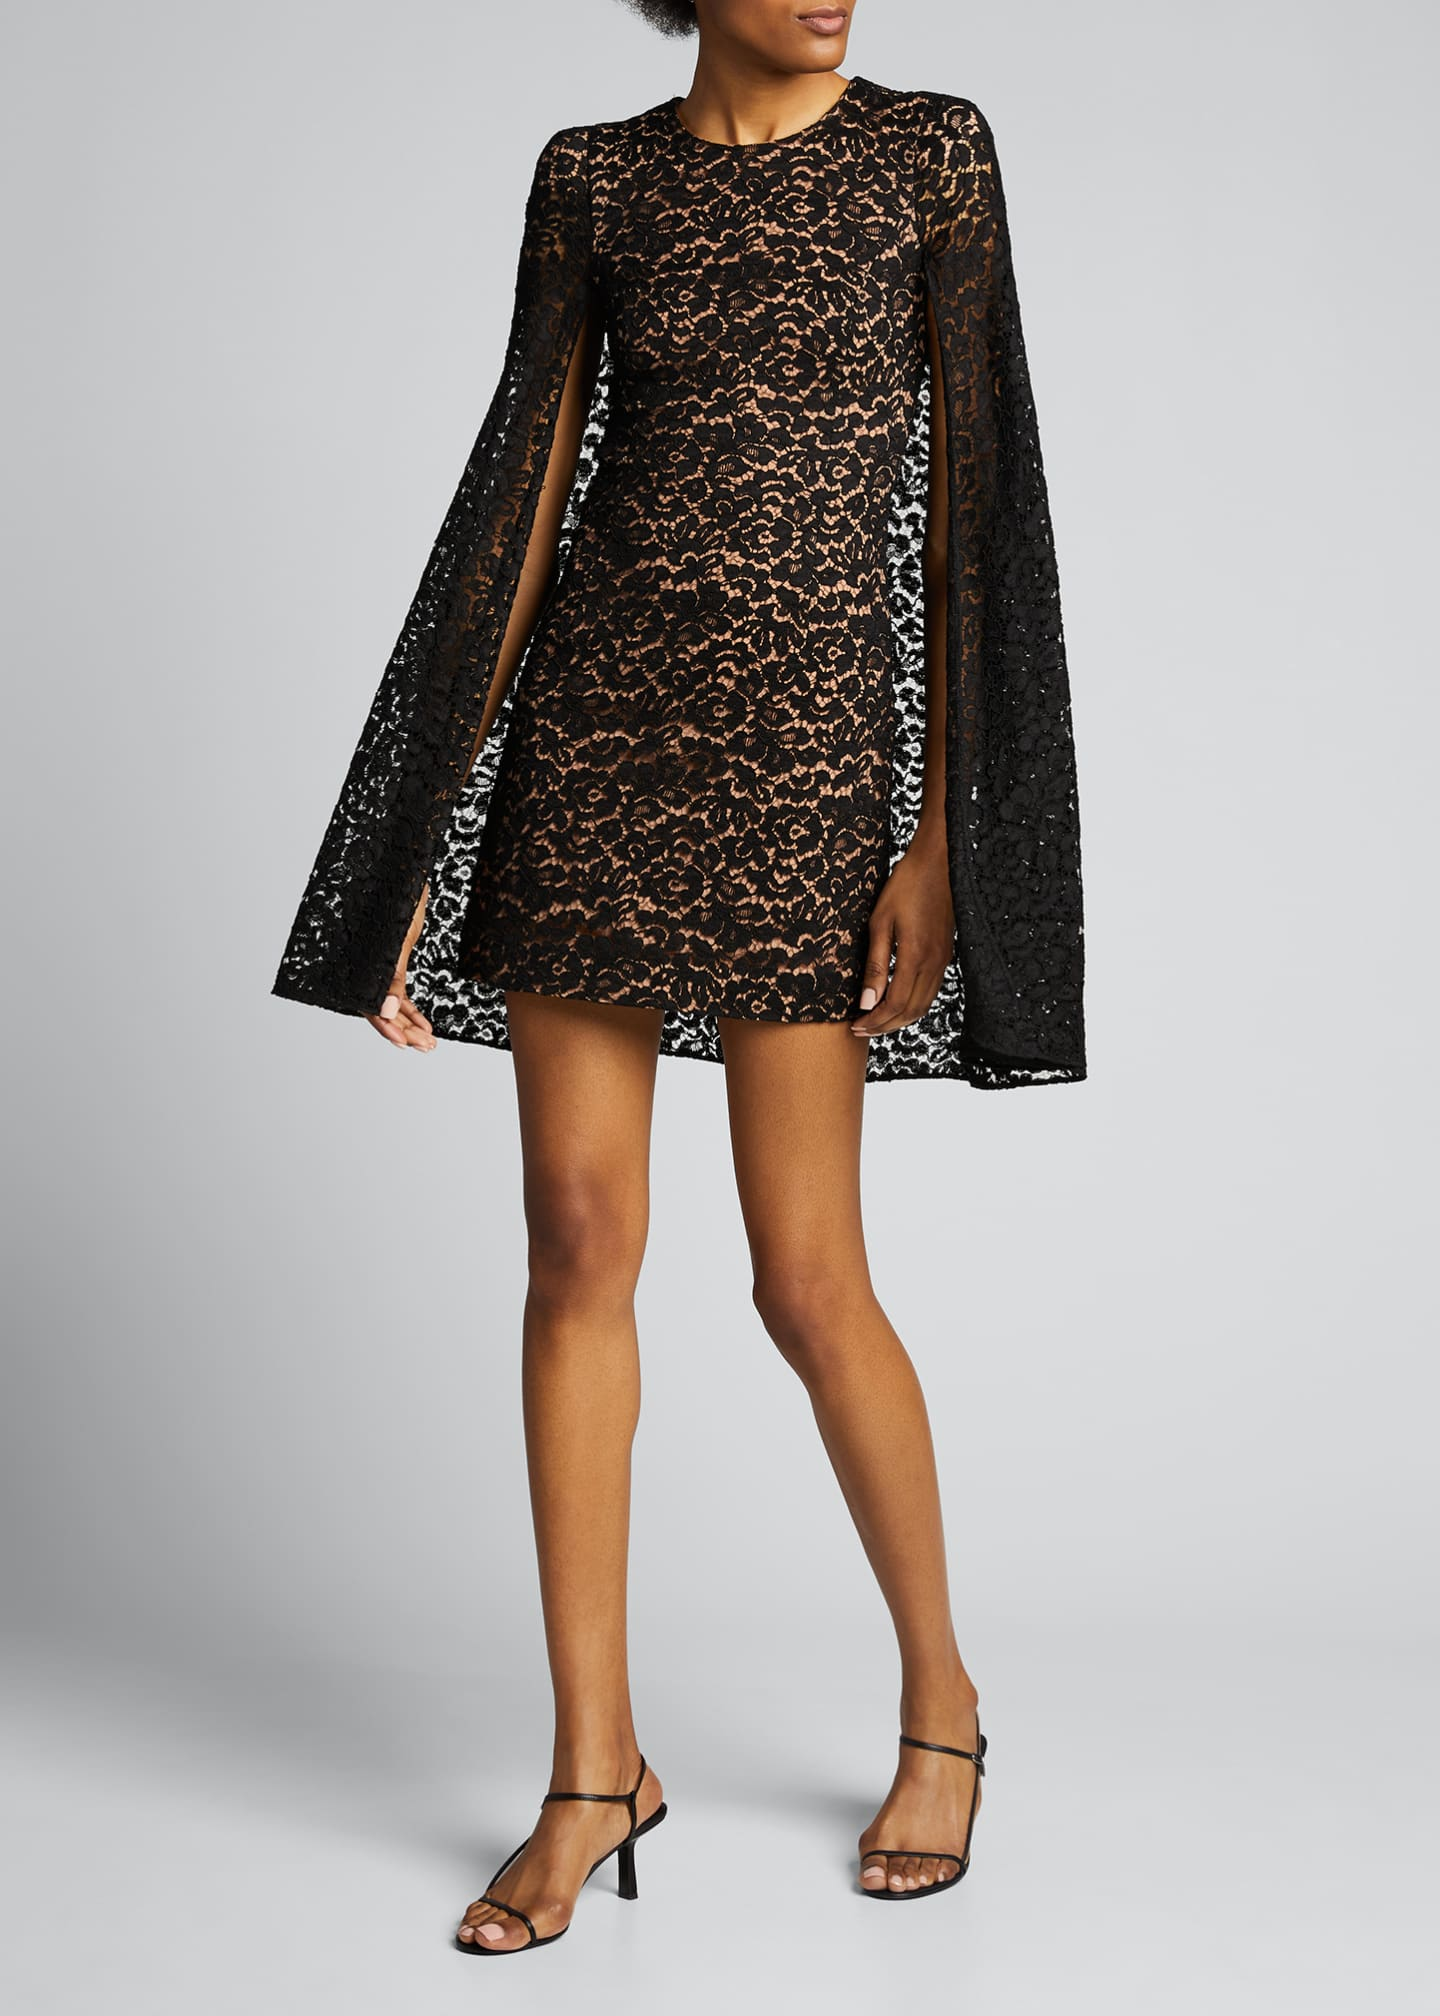 Image 1 of 5: Floral Lace Cape Dress